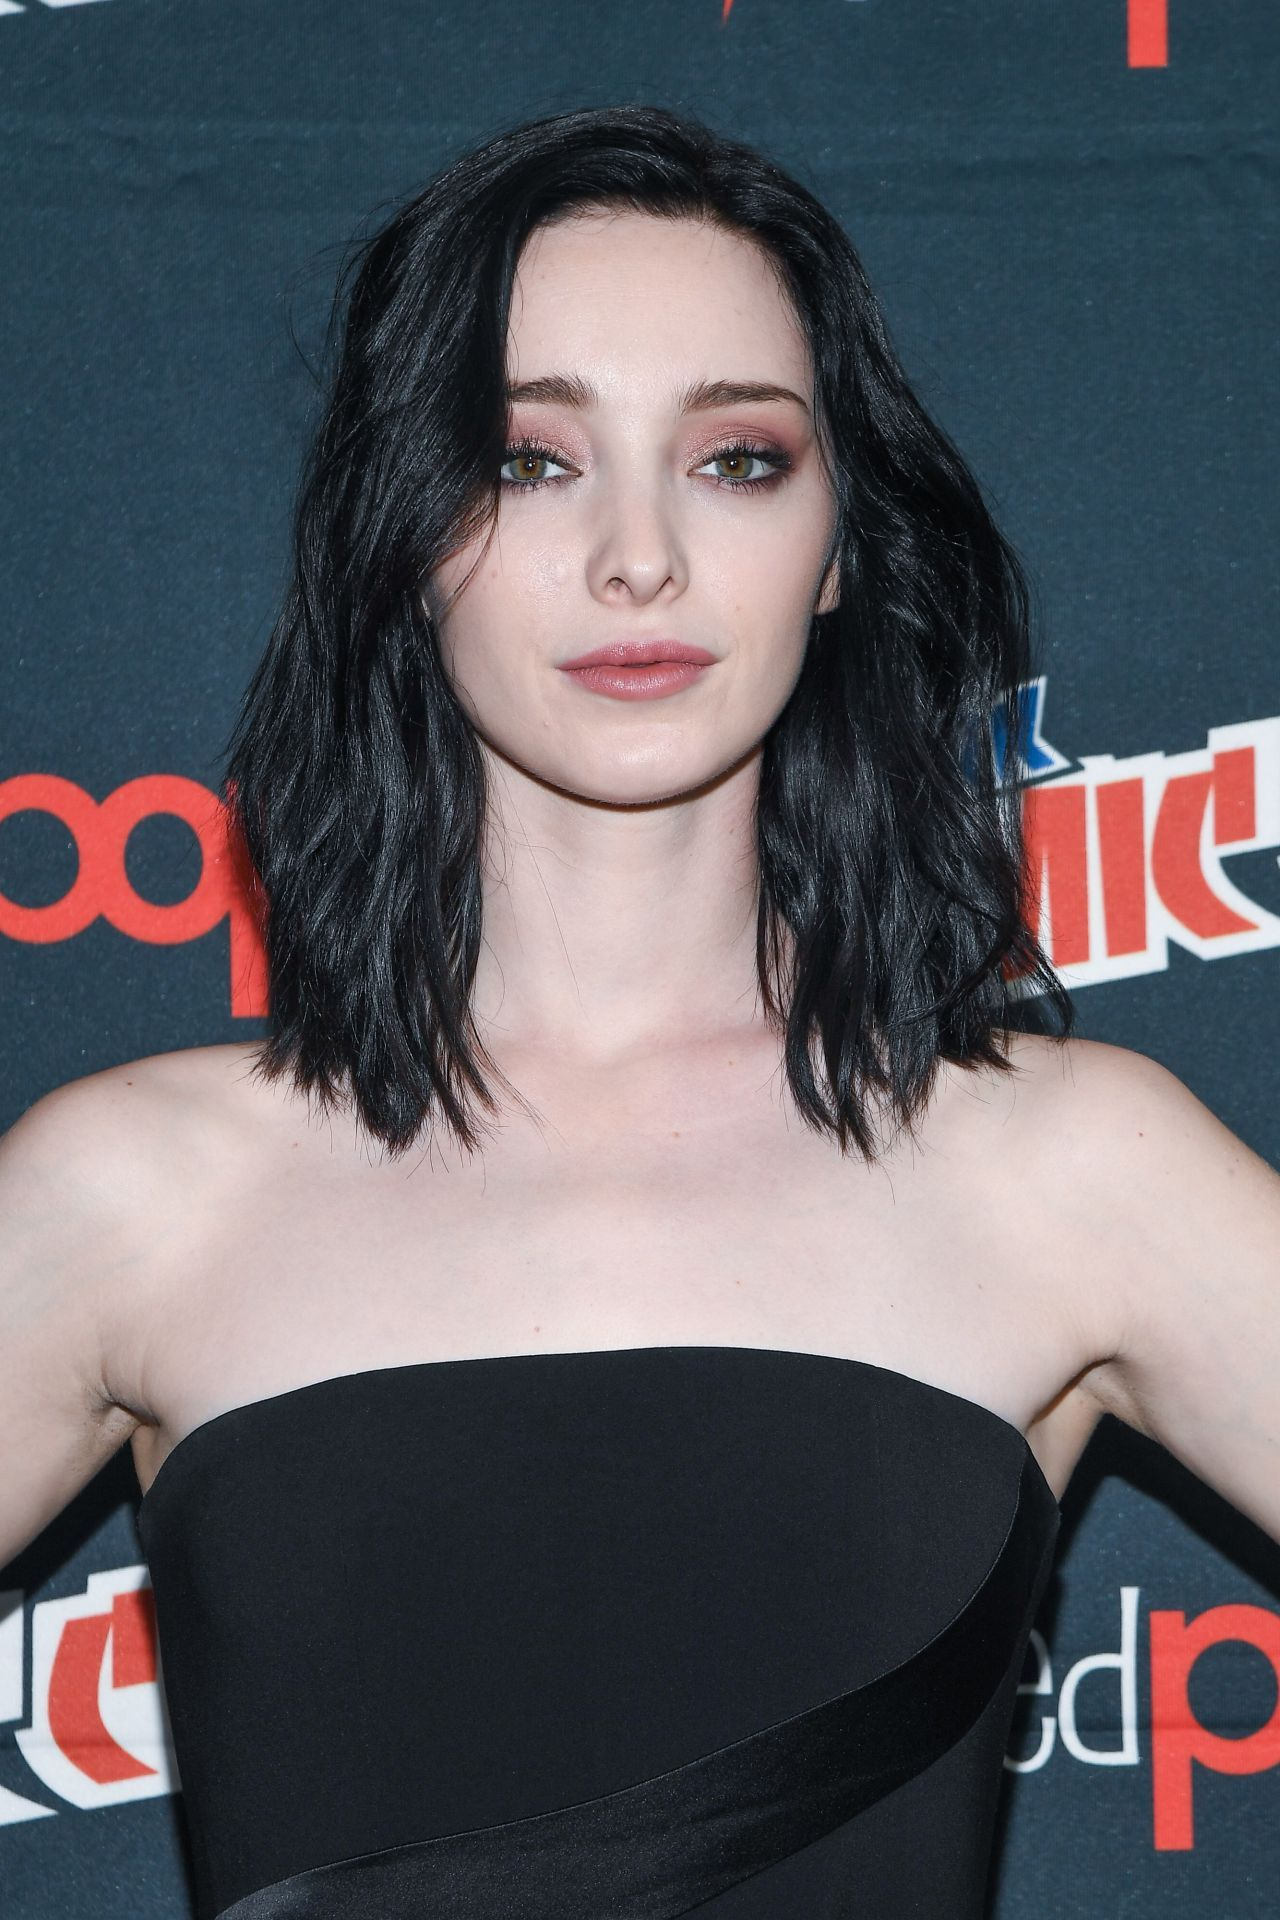 Watch Emma dumont sexy at comic con video